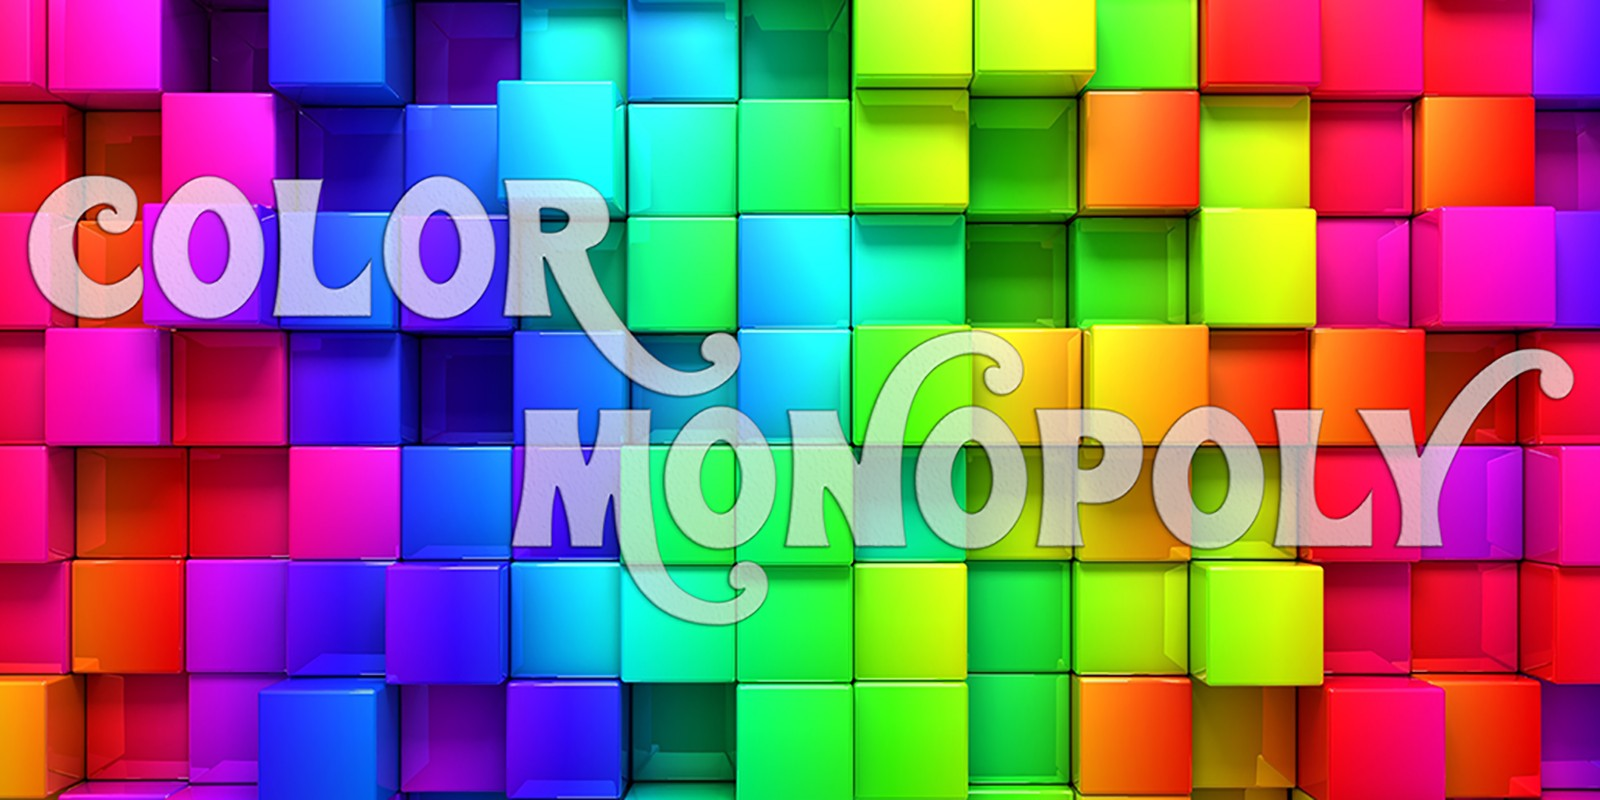 Color Monopoly - Android Game Source Code